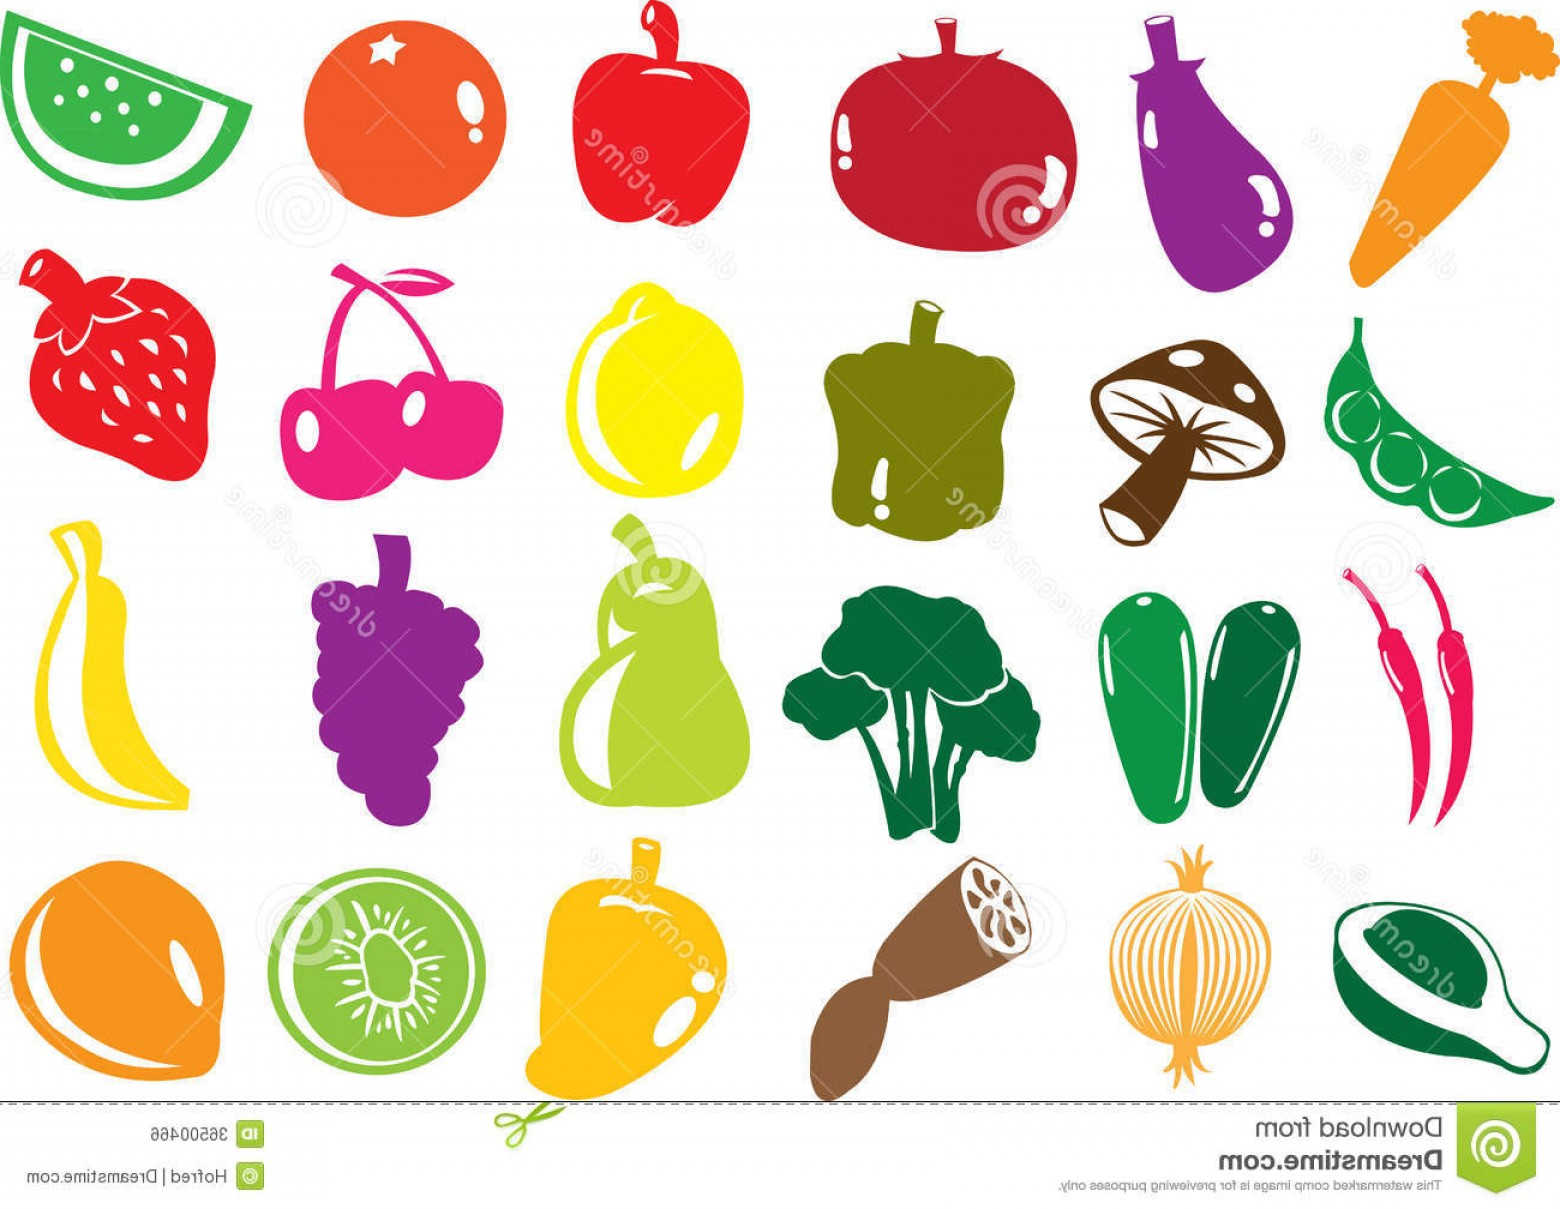 Vector Fruit Vegetable: Royalty Free Stock Image Vector Fruit Vegetables Icons Illustration Format Image